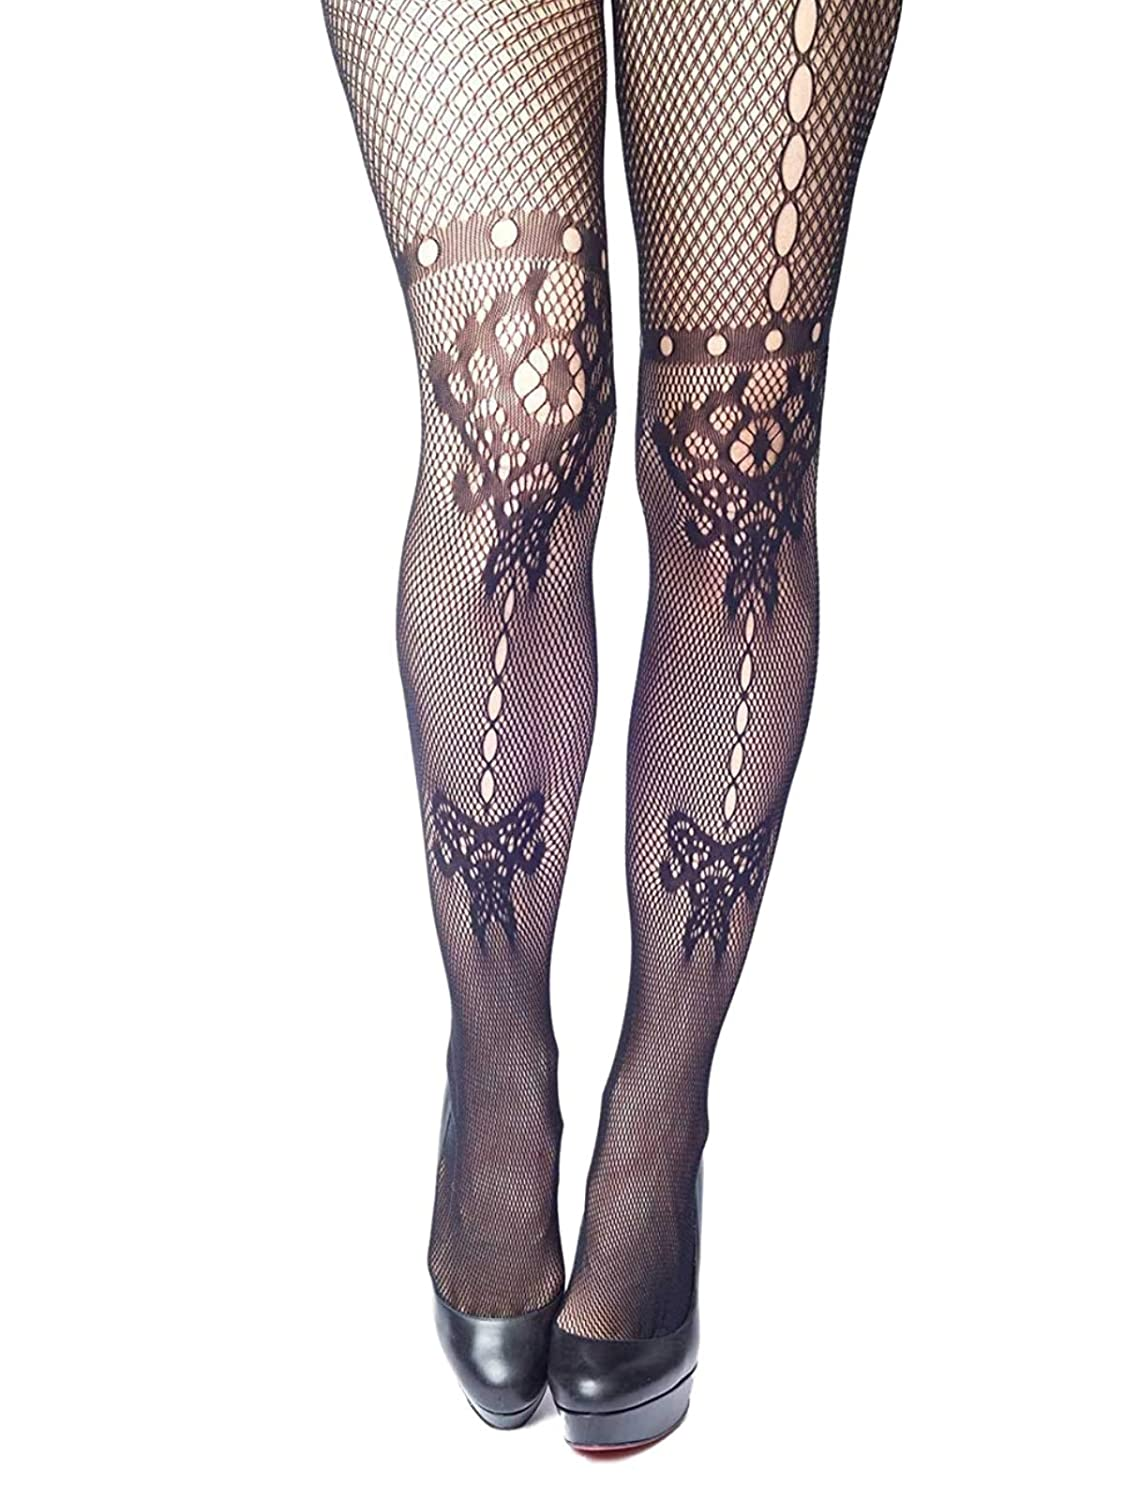 Yelete Killer Legs Women's Queen Plus Size Fishnet Pantyhose 168YD065Q, Black, Butterfly and Floral Inkblot